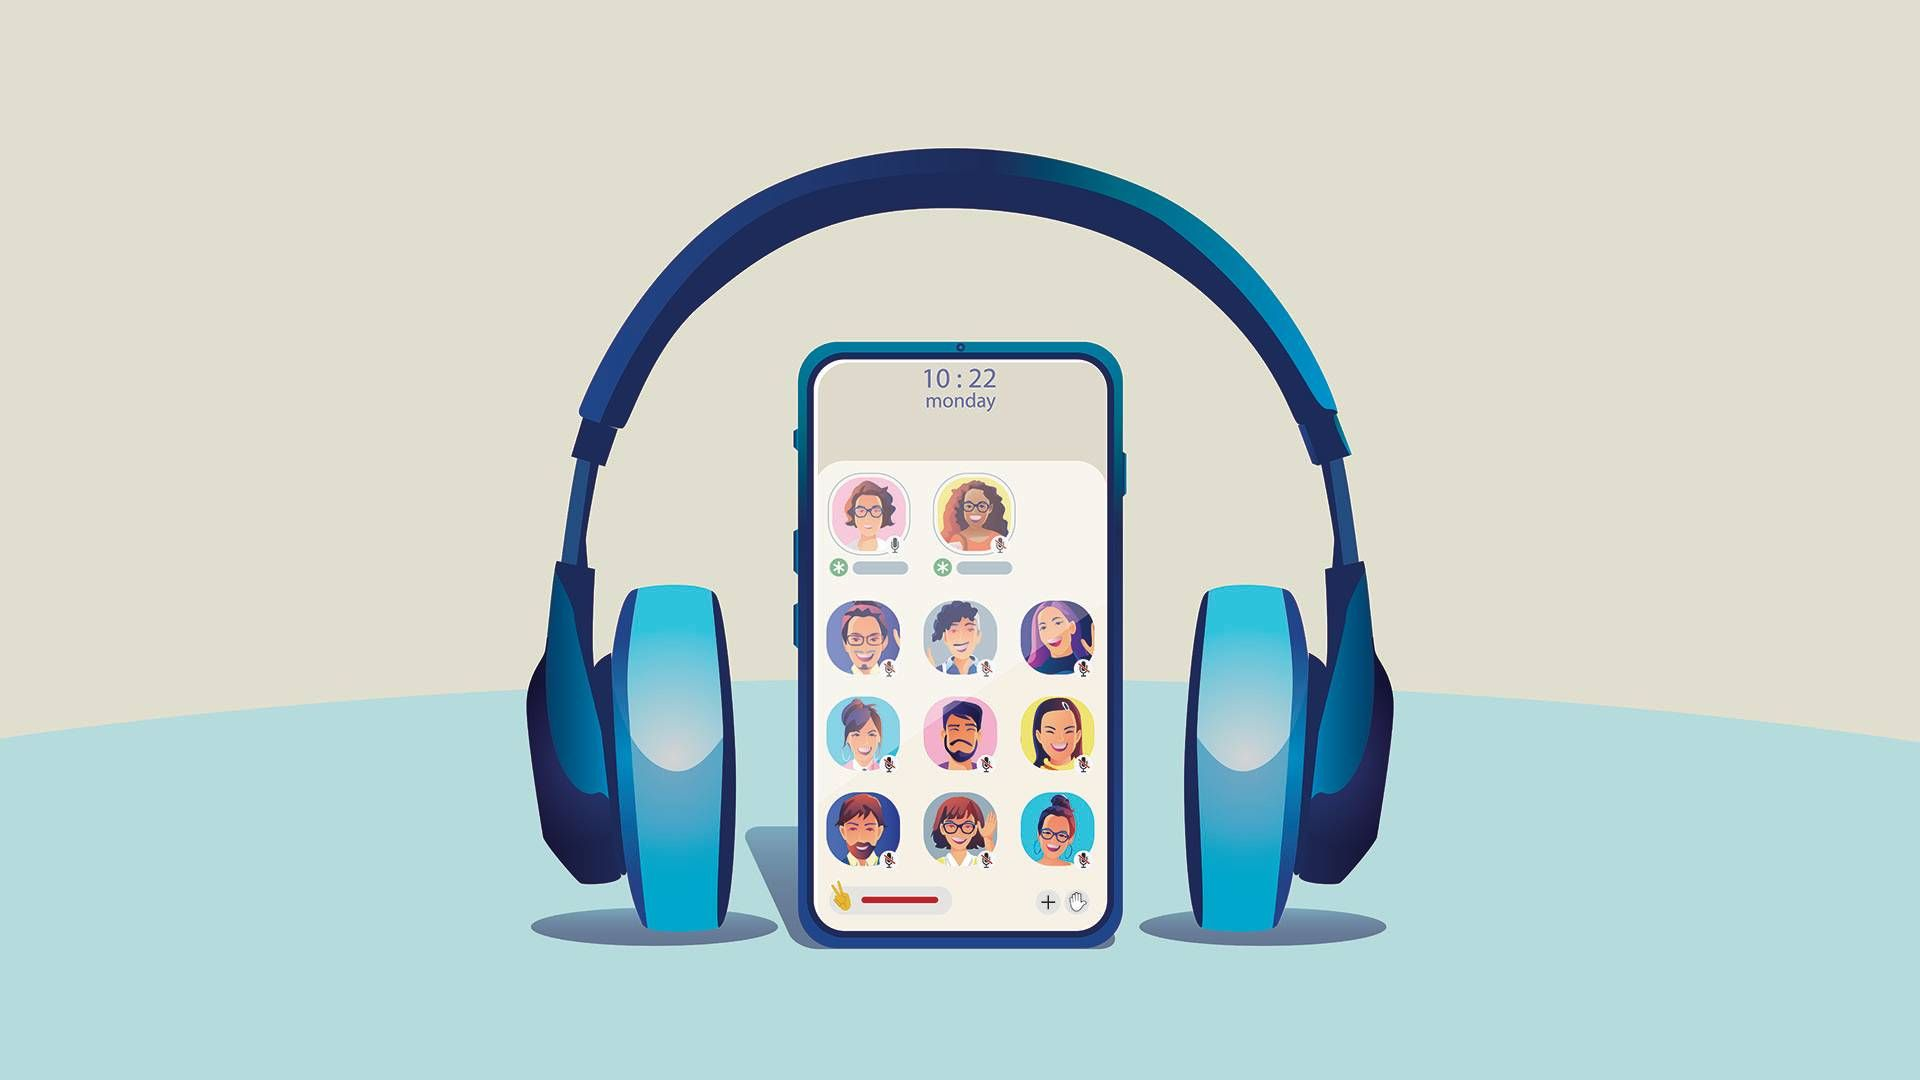 A voice chat app. rewire pbs our future clubhouse